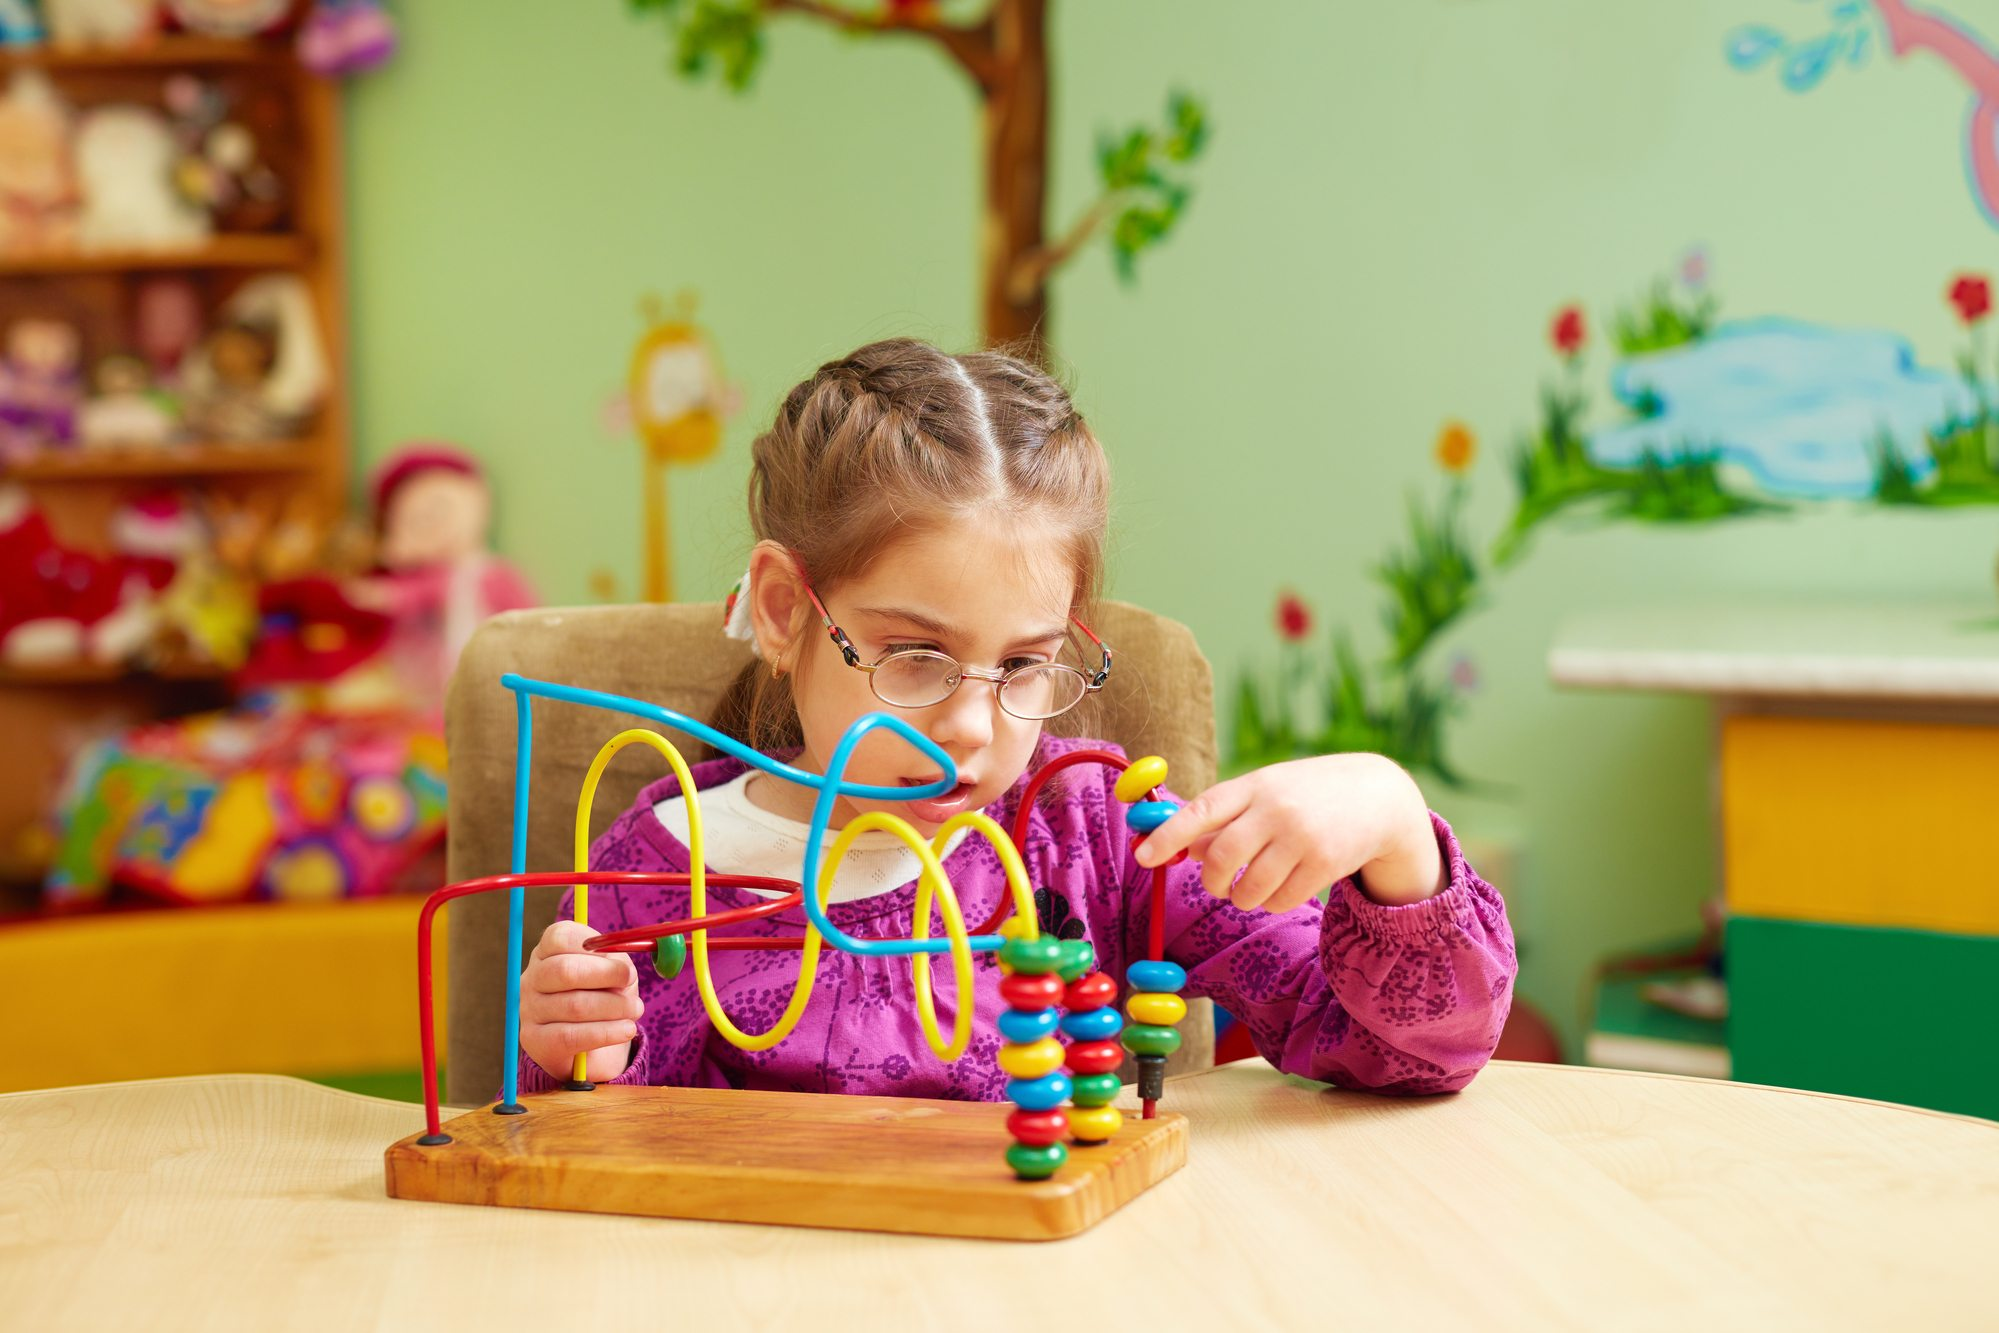 Look for hotels and kids clubs that have staff trained to work with disabled kids